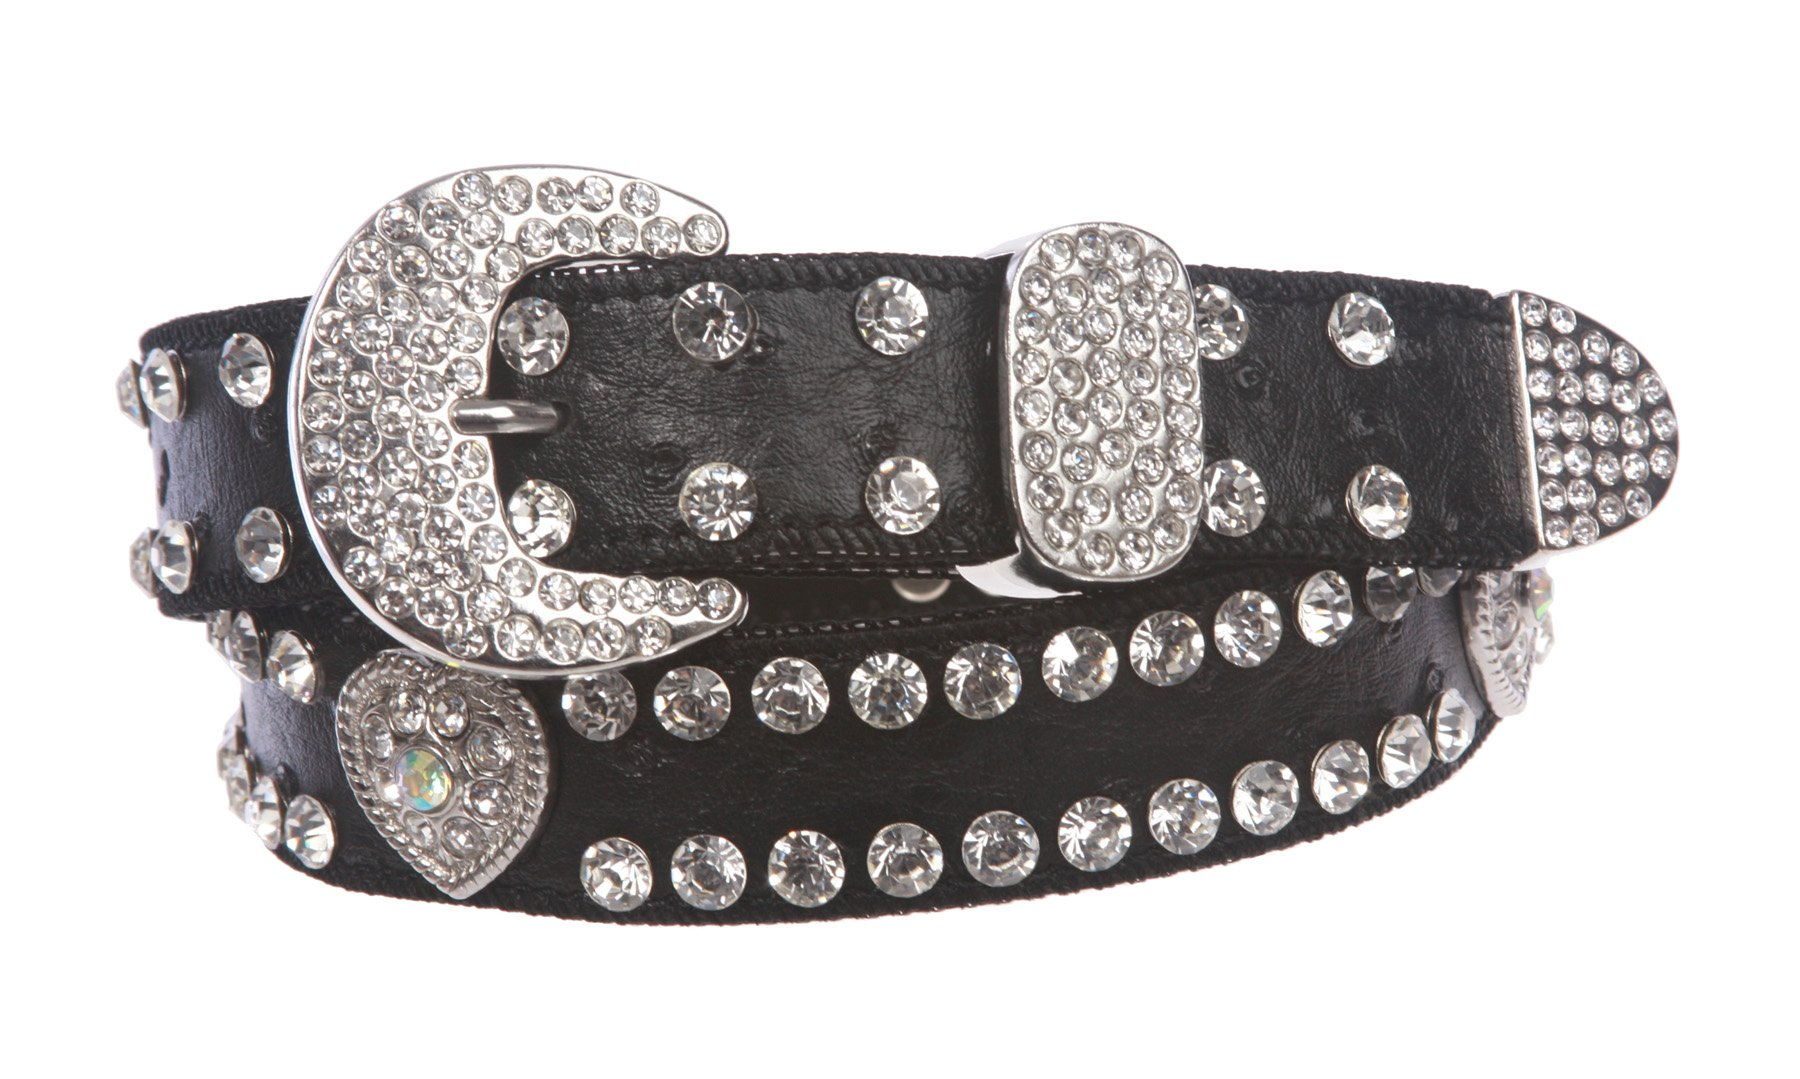 Kids 1 1/16'' (27 mm) Ostrich Print Heart Ornaments Skinny Rhinestone Belt, Black | 28'' by beltiscool (Image #1)